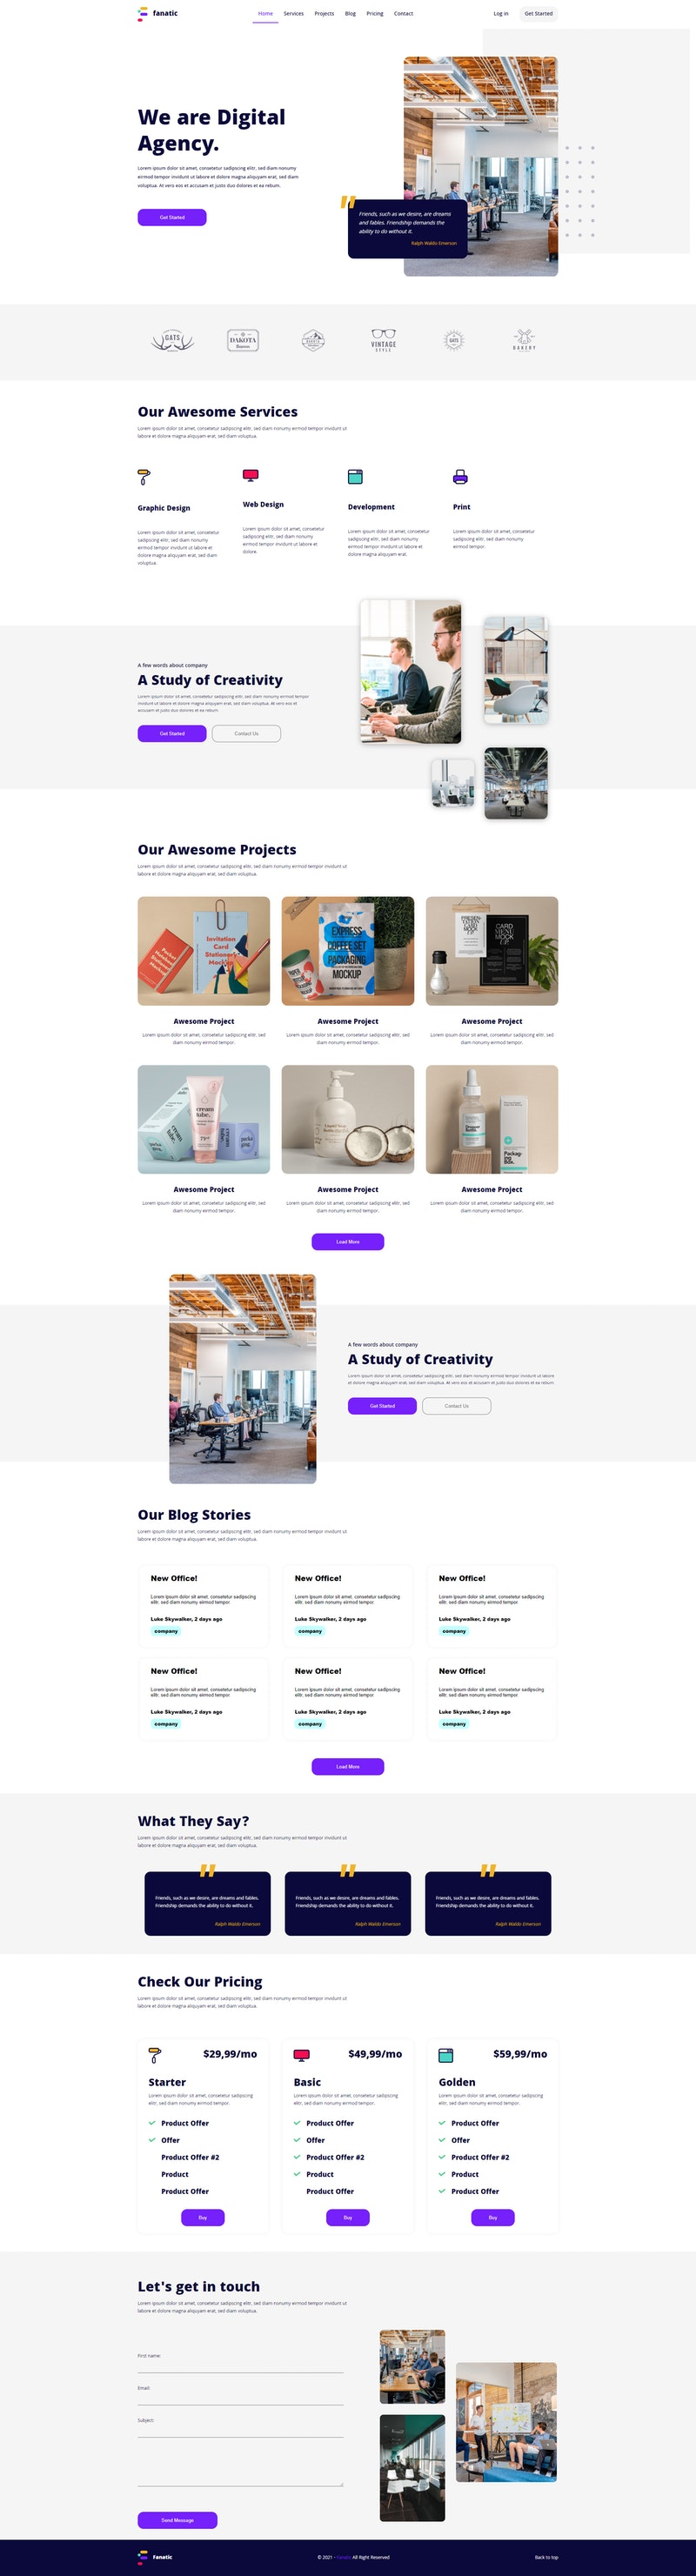 Fanatic - Free React Landing Page preview